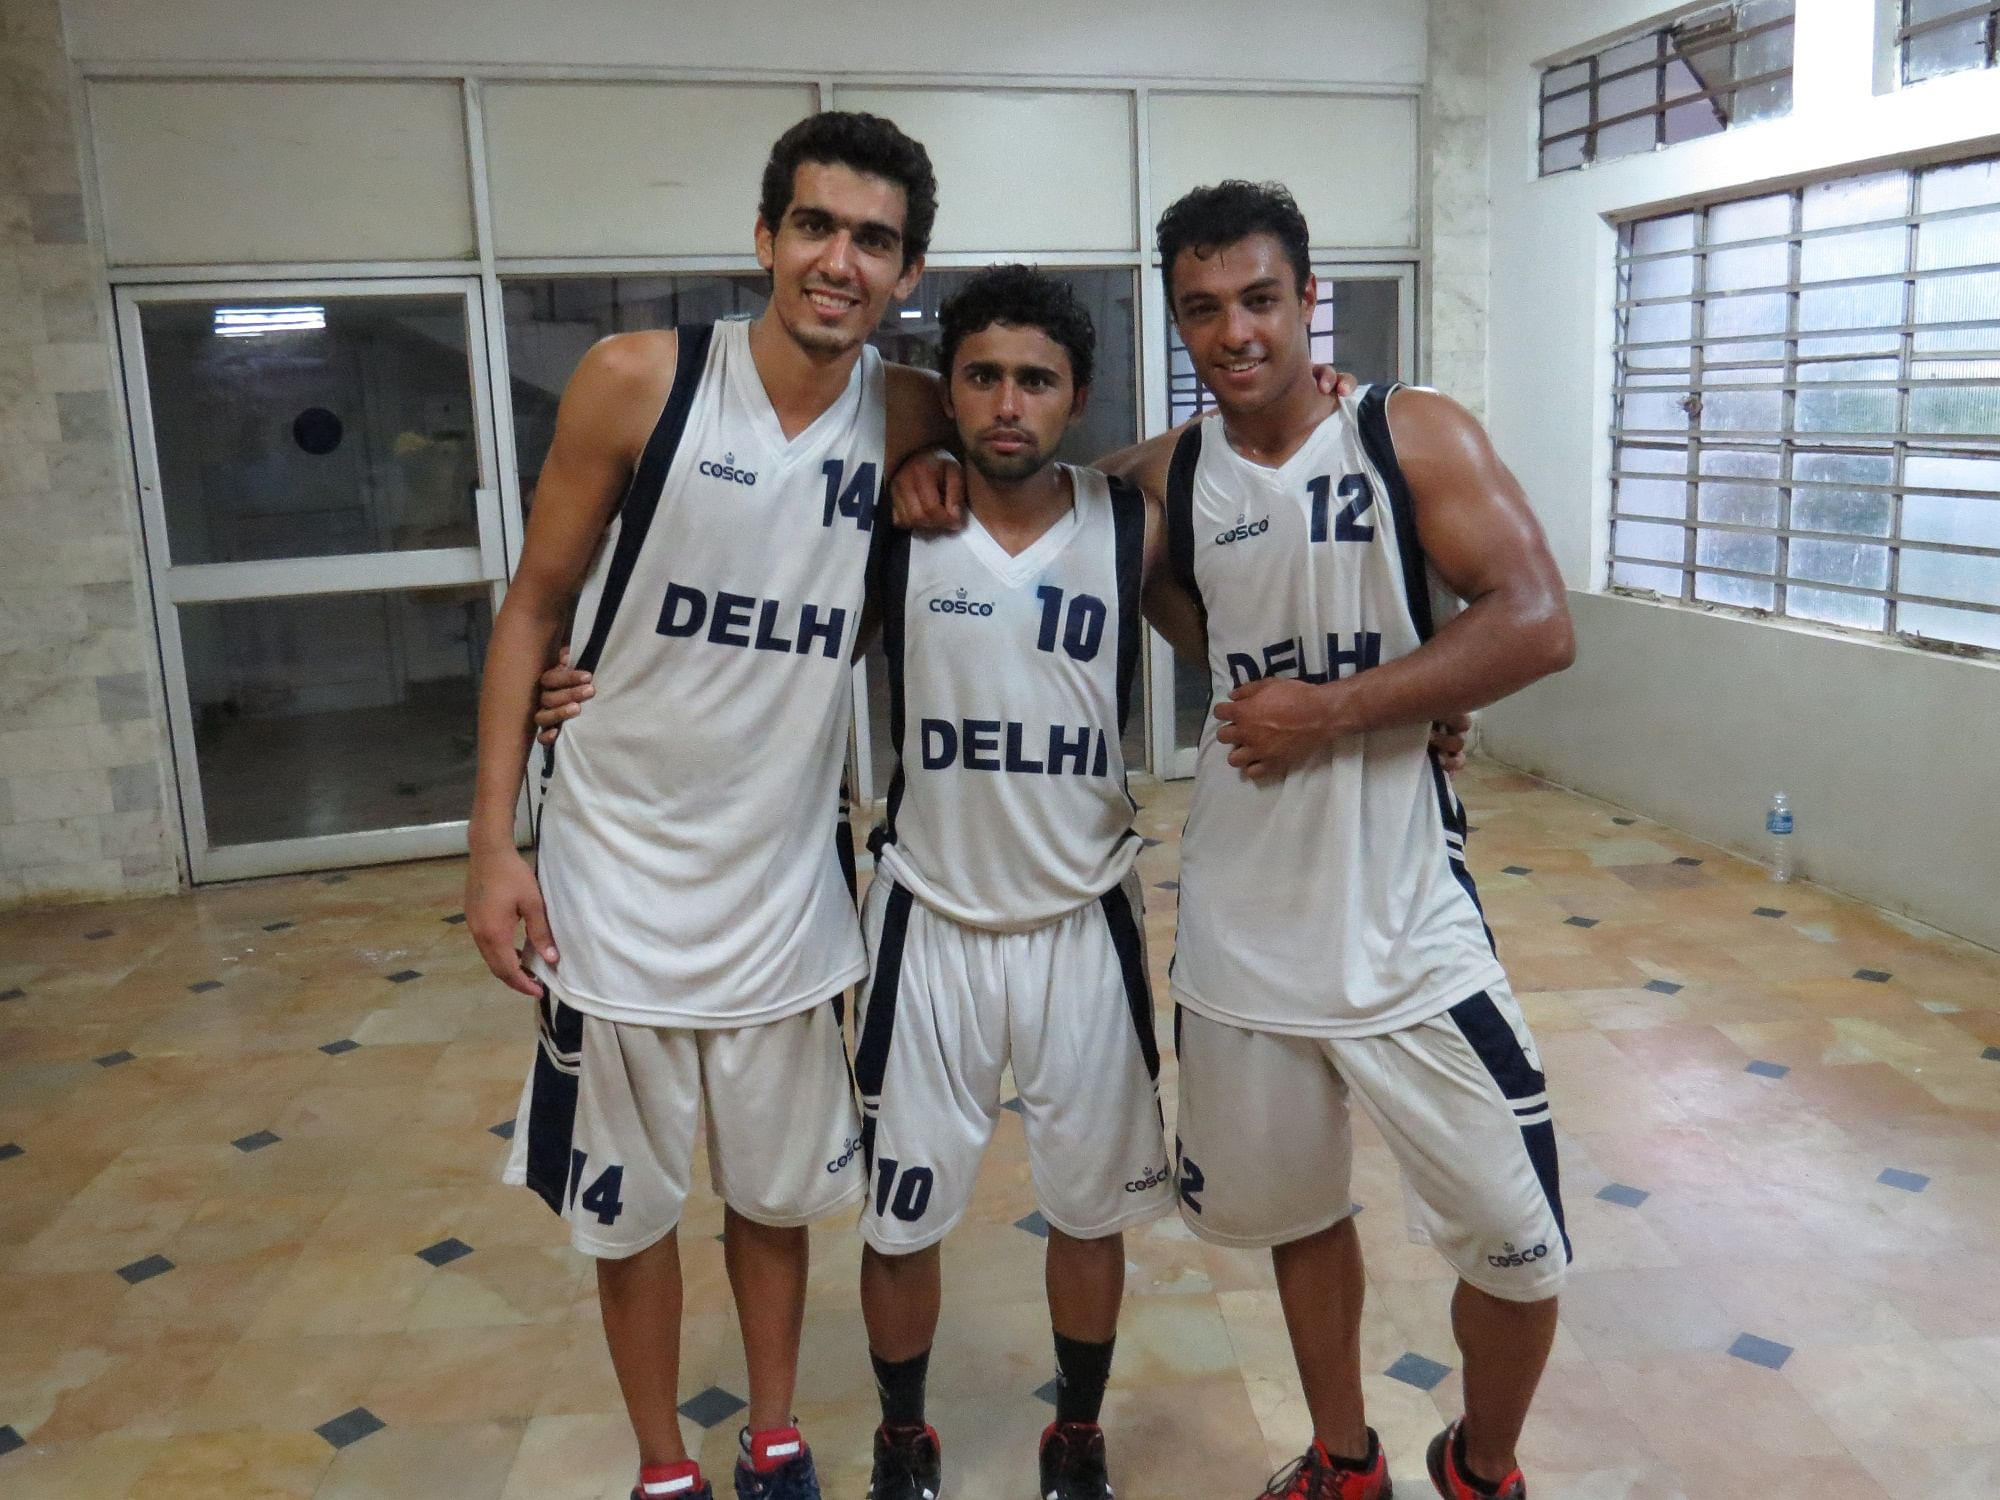 Delhi's Pankaj Rathee (14), Narender (10) and Sohal Singh (12). (Image Courtesy: Clint Furtado/BFI)